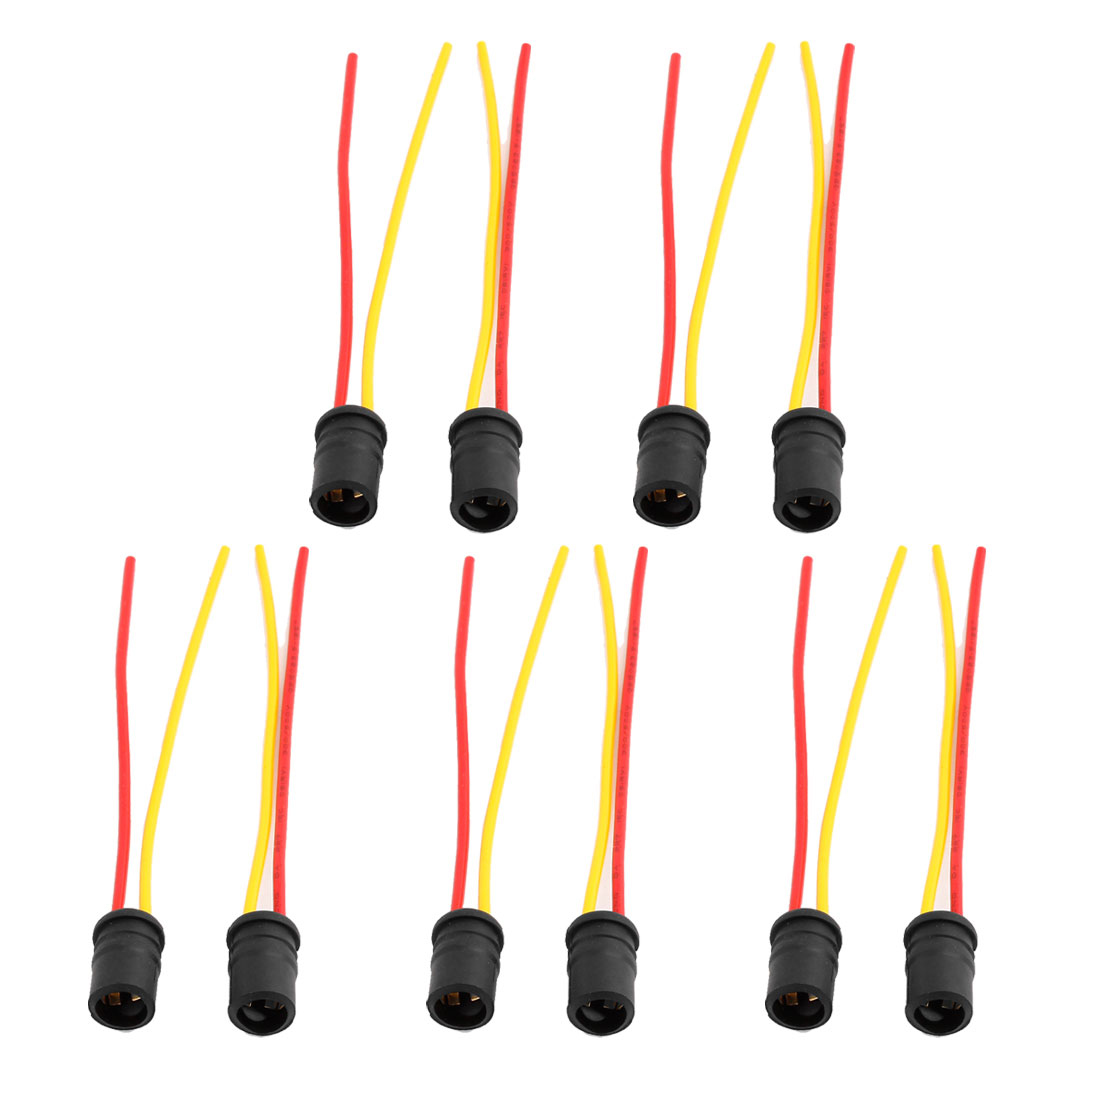 10 Pcs T10 Light Socket Lamp Bulb Holder Wire Harness Connector for Car